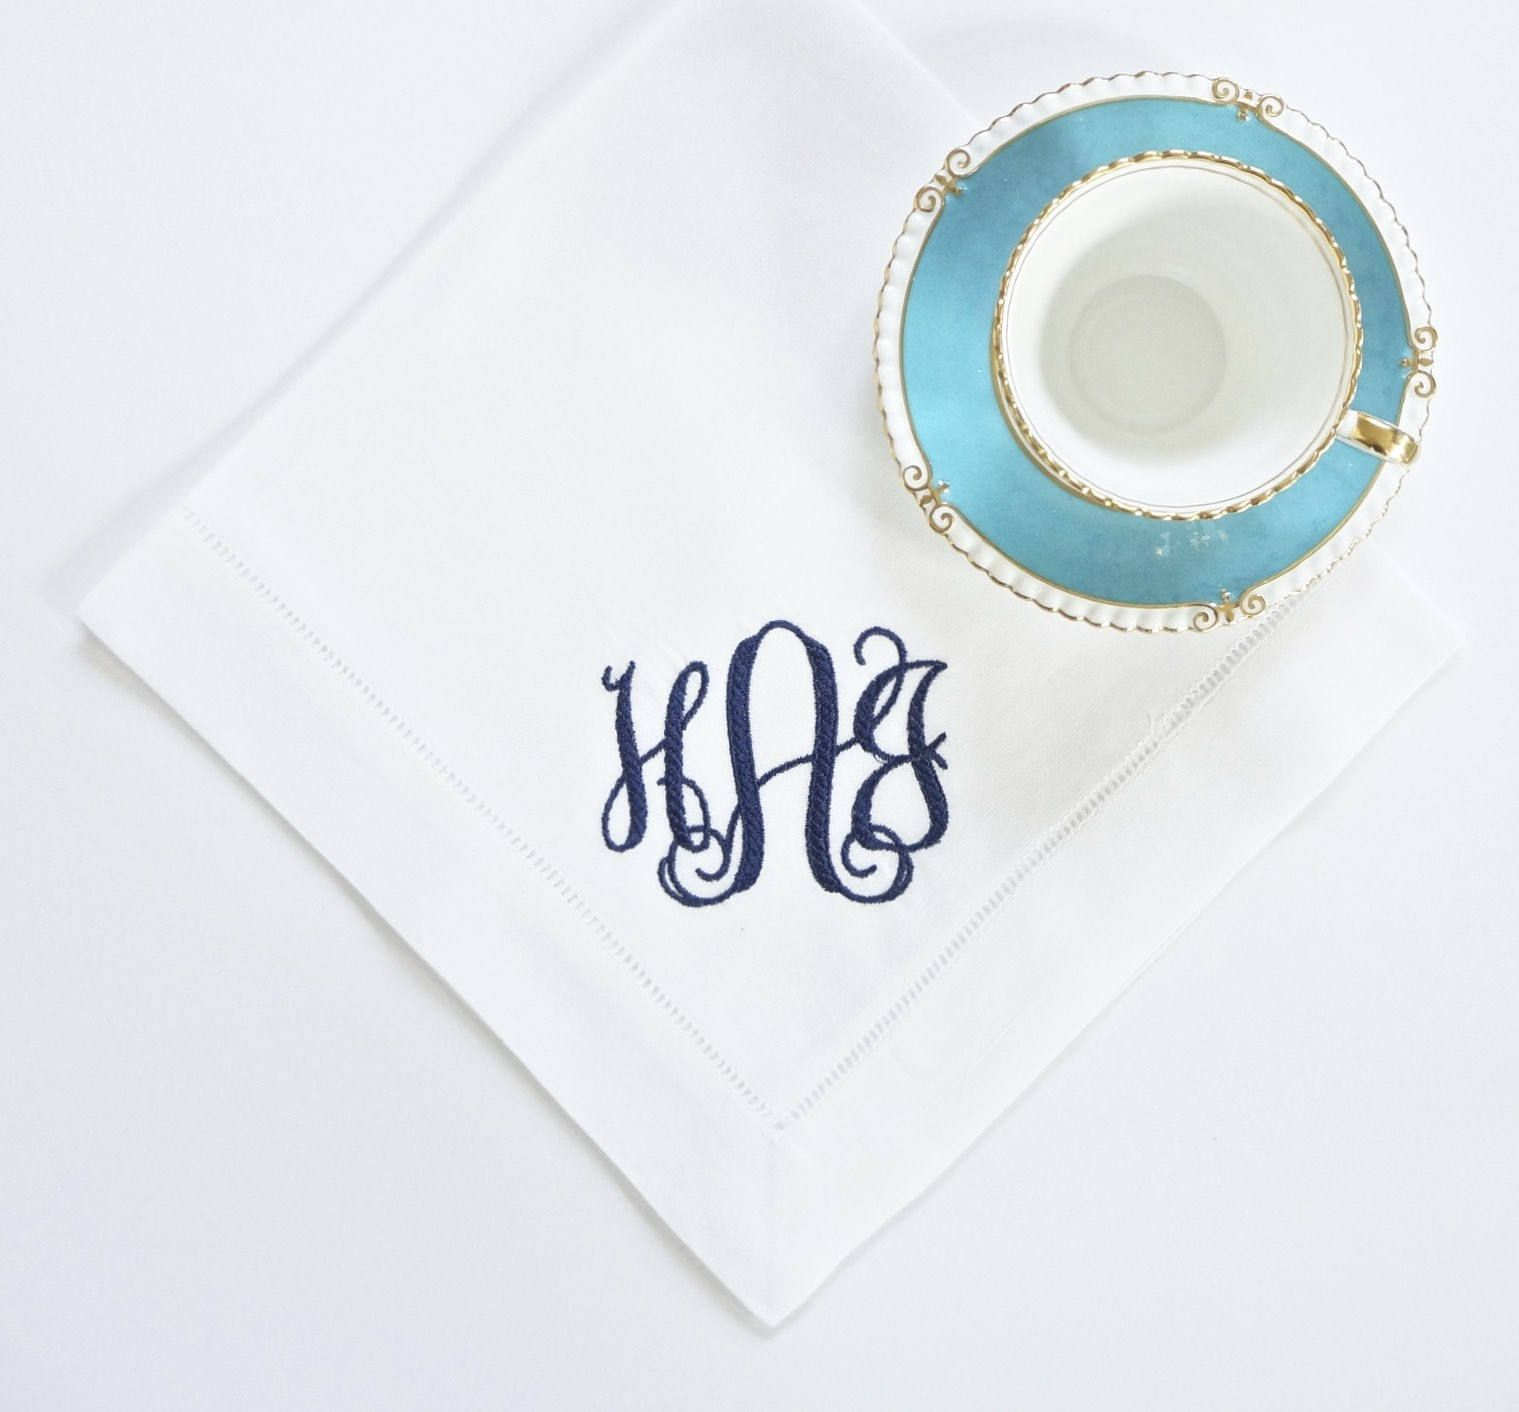 Embroidered Towels For Wedding Gift: Scroll II Monogram Embroidered Dinner & Cocktail Napkins